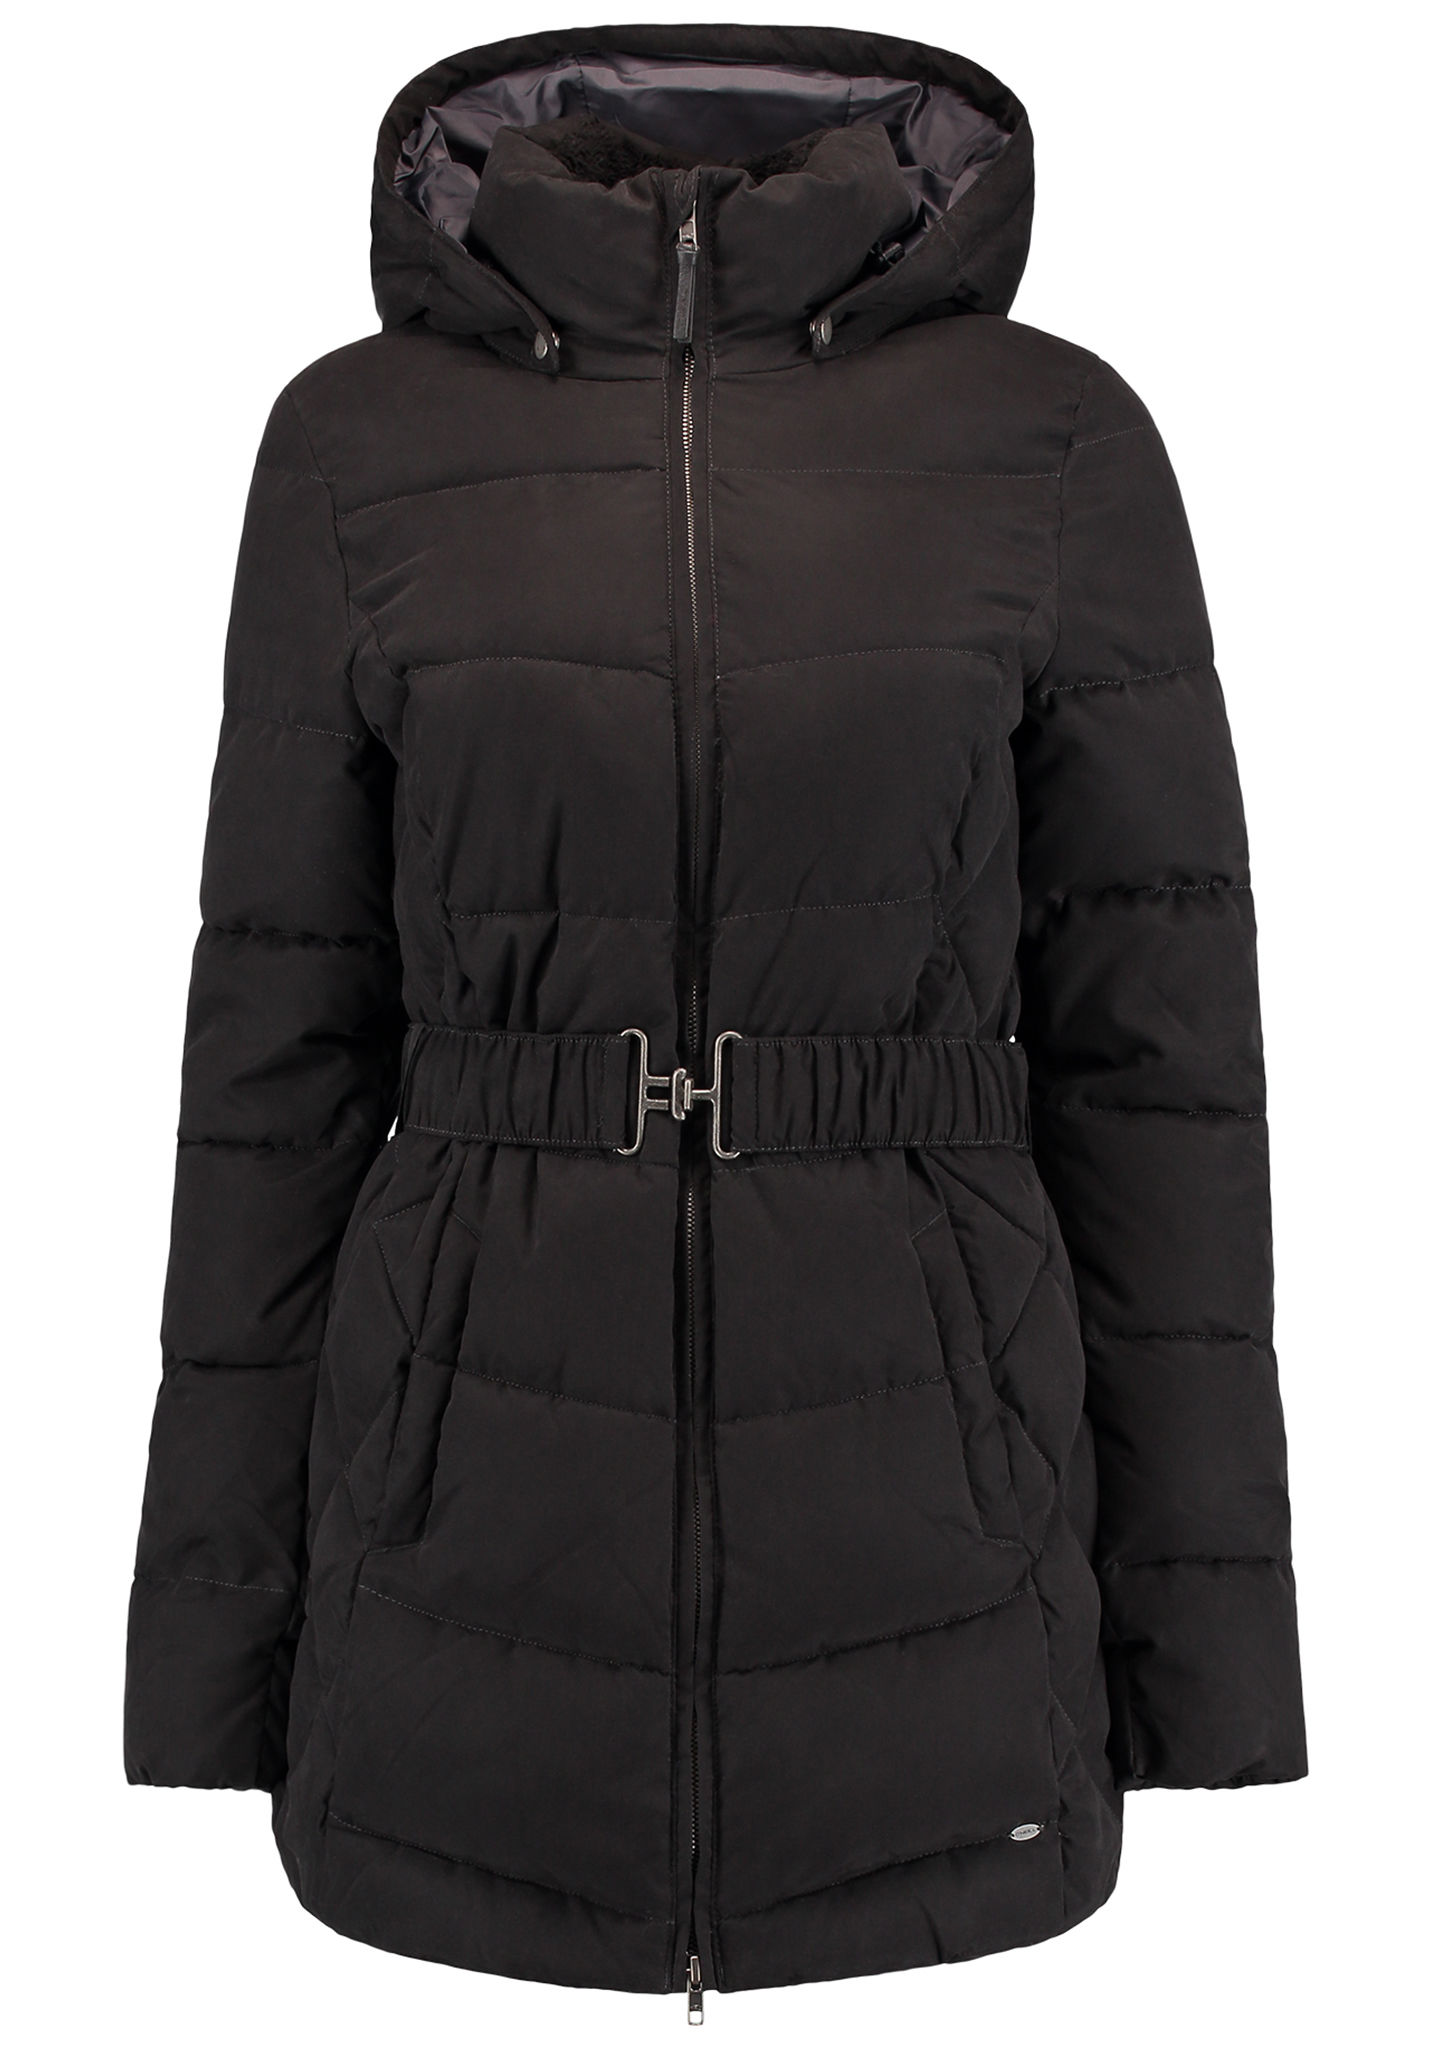 6c4a933d2199 O Neill Control Padded - Functional Jacket for Women - Black - Planet Sports